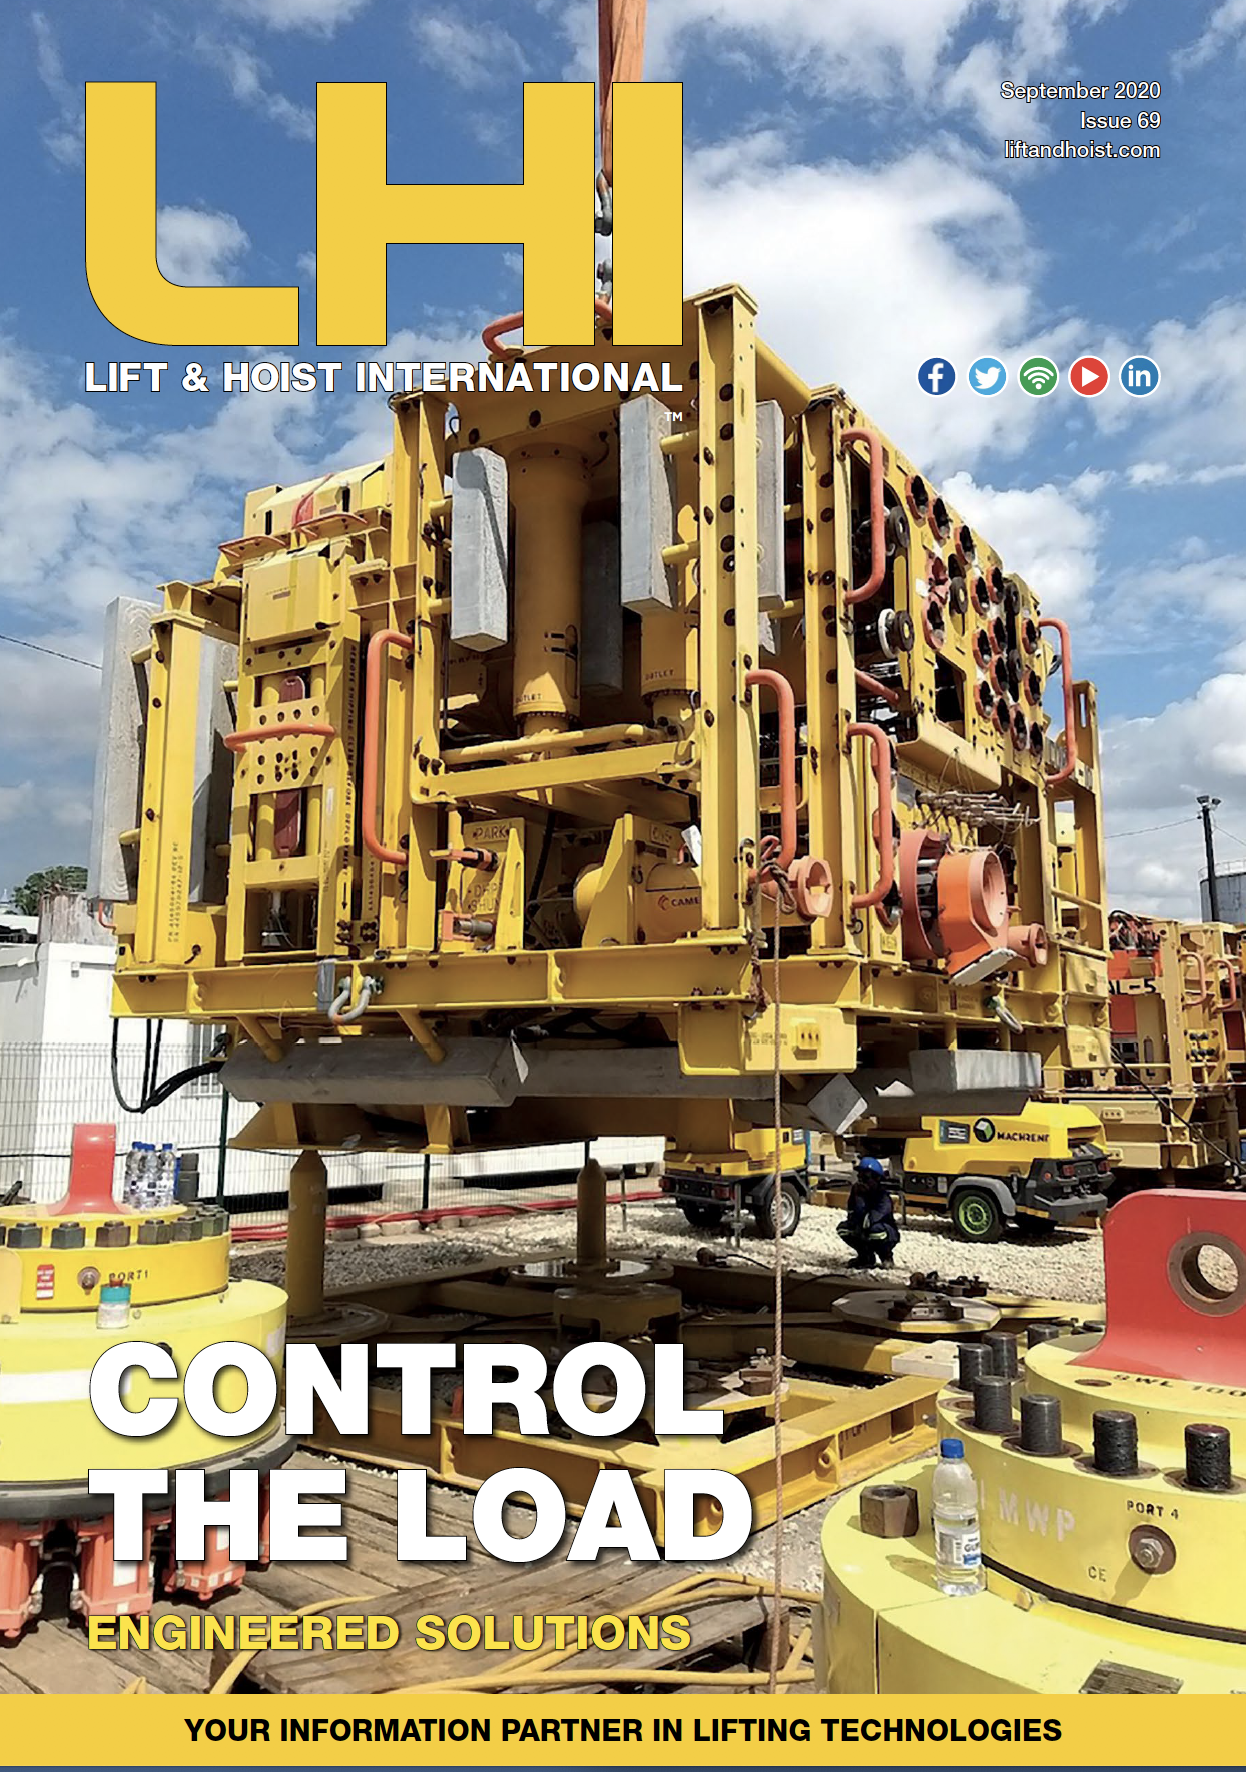 Lift and Hoist International is a magazine for the lifting and hoisting world focussing on overhead cranes, hoists, access equipment and forklift trucks